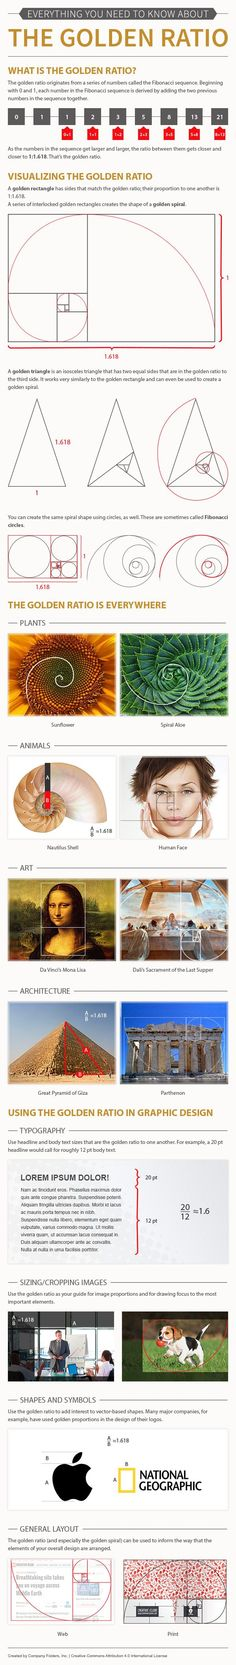 Everything you Need to Know About The Golden Ratio #infographic #GoldenRatio #Photography #Design